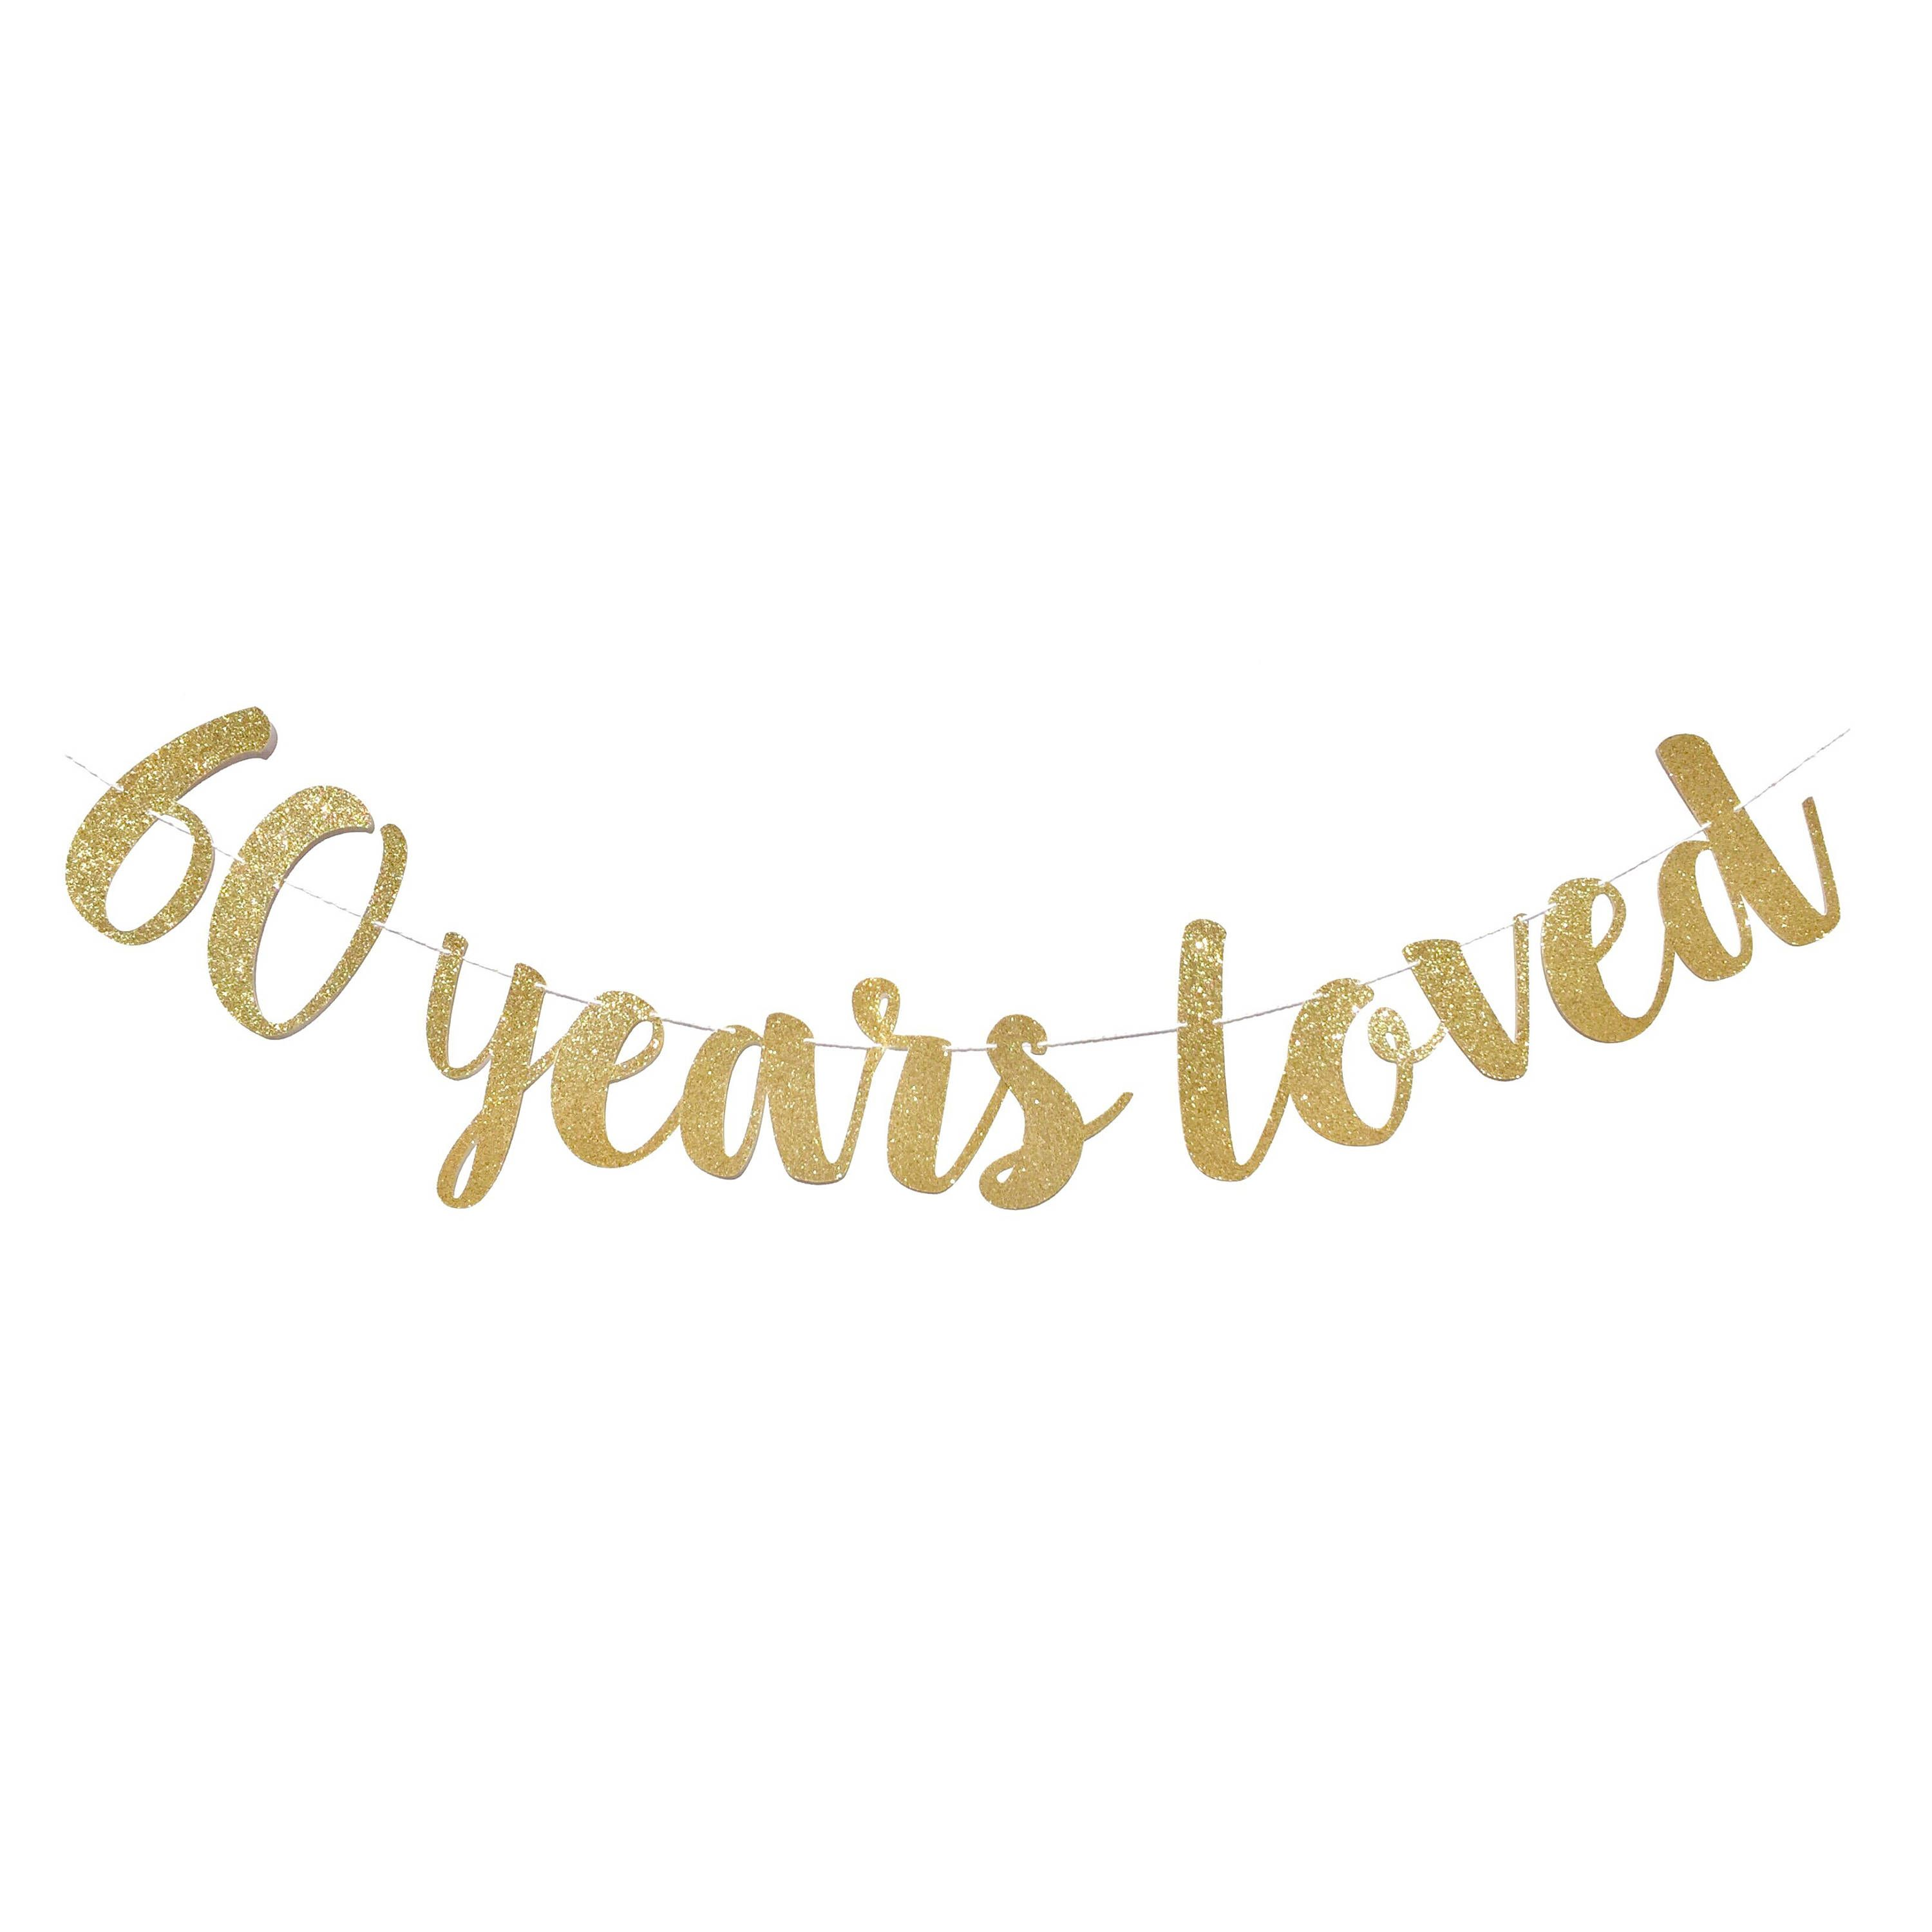 60 Years Loved Banner